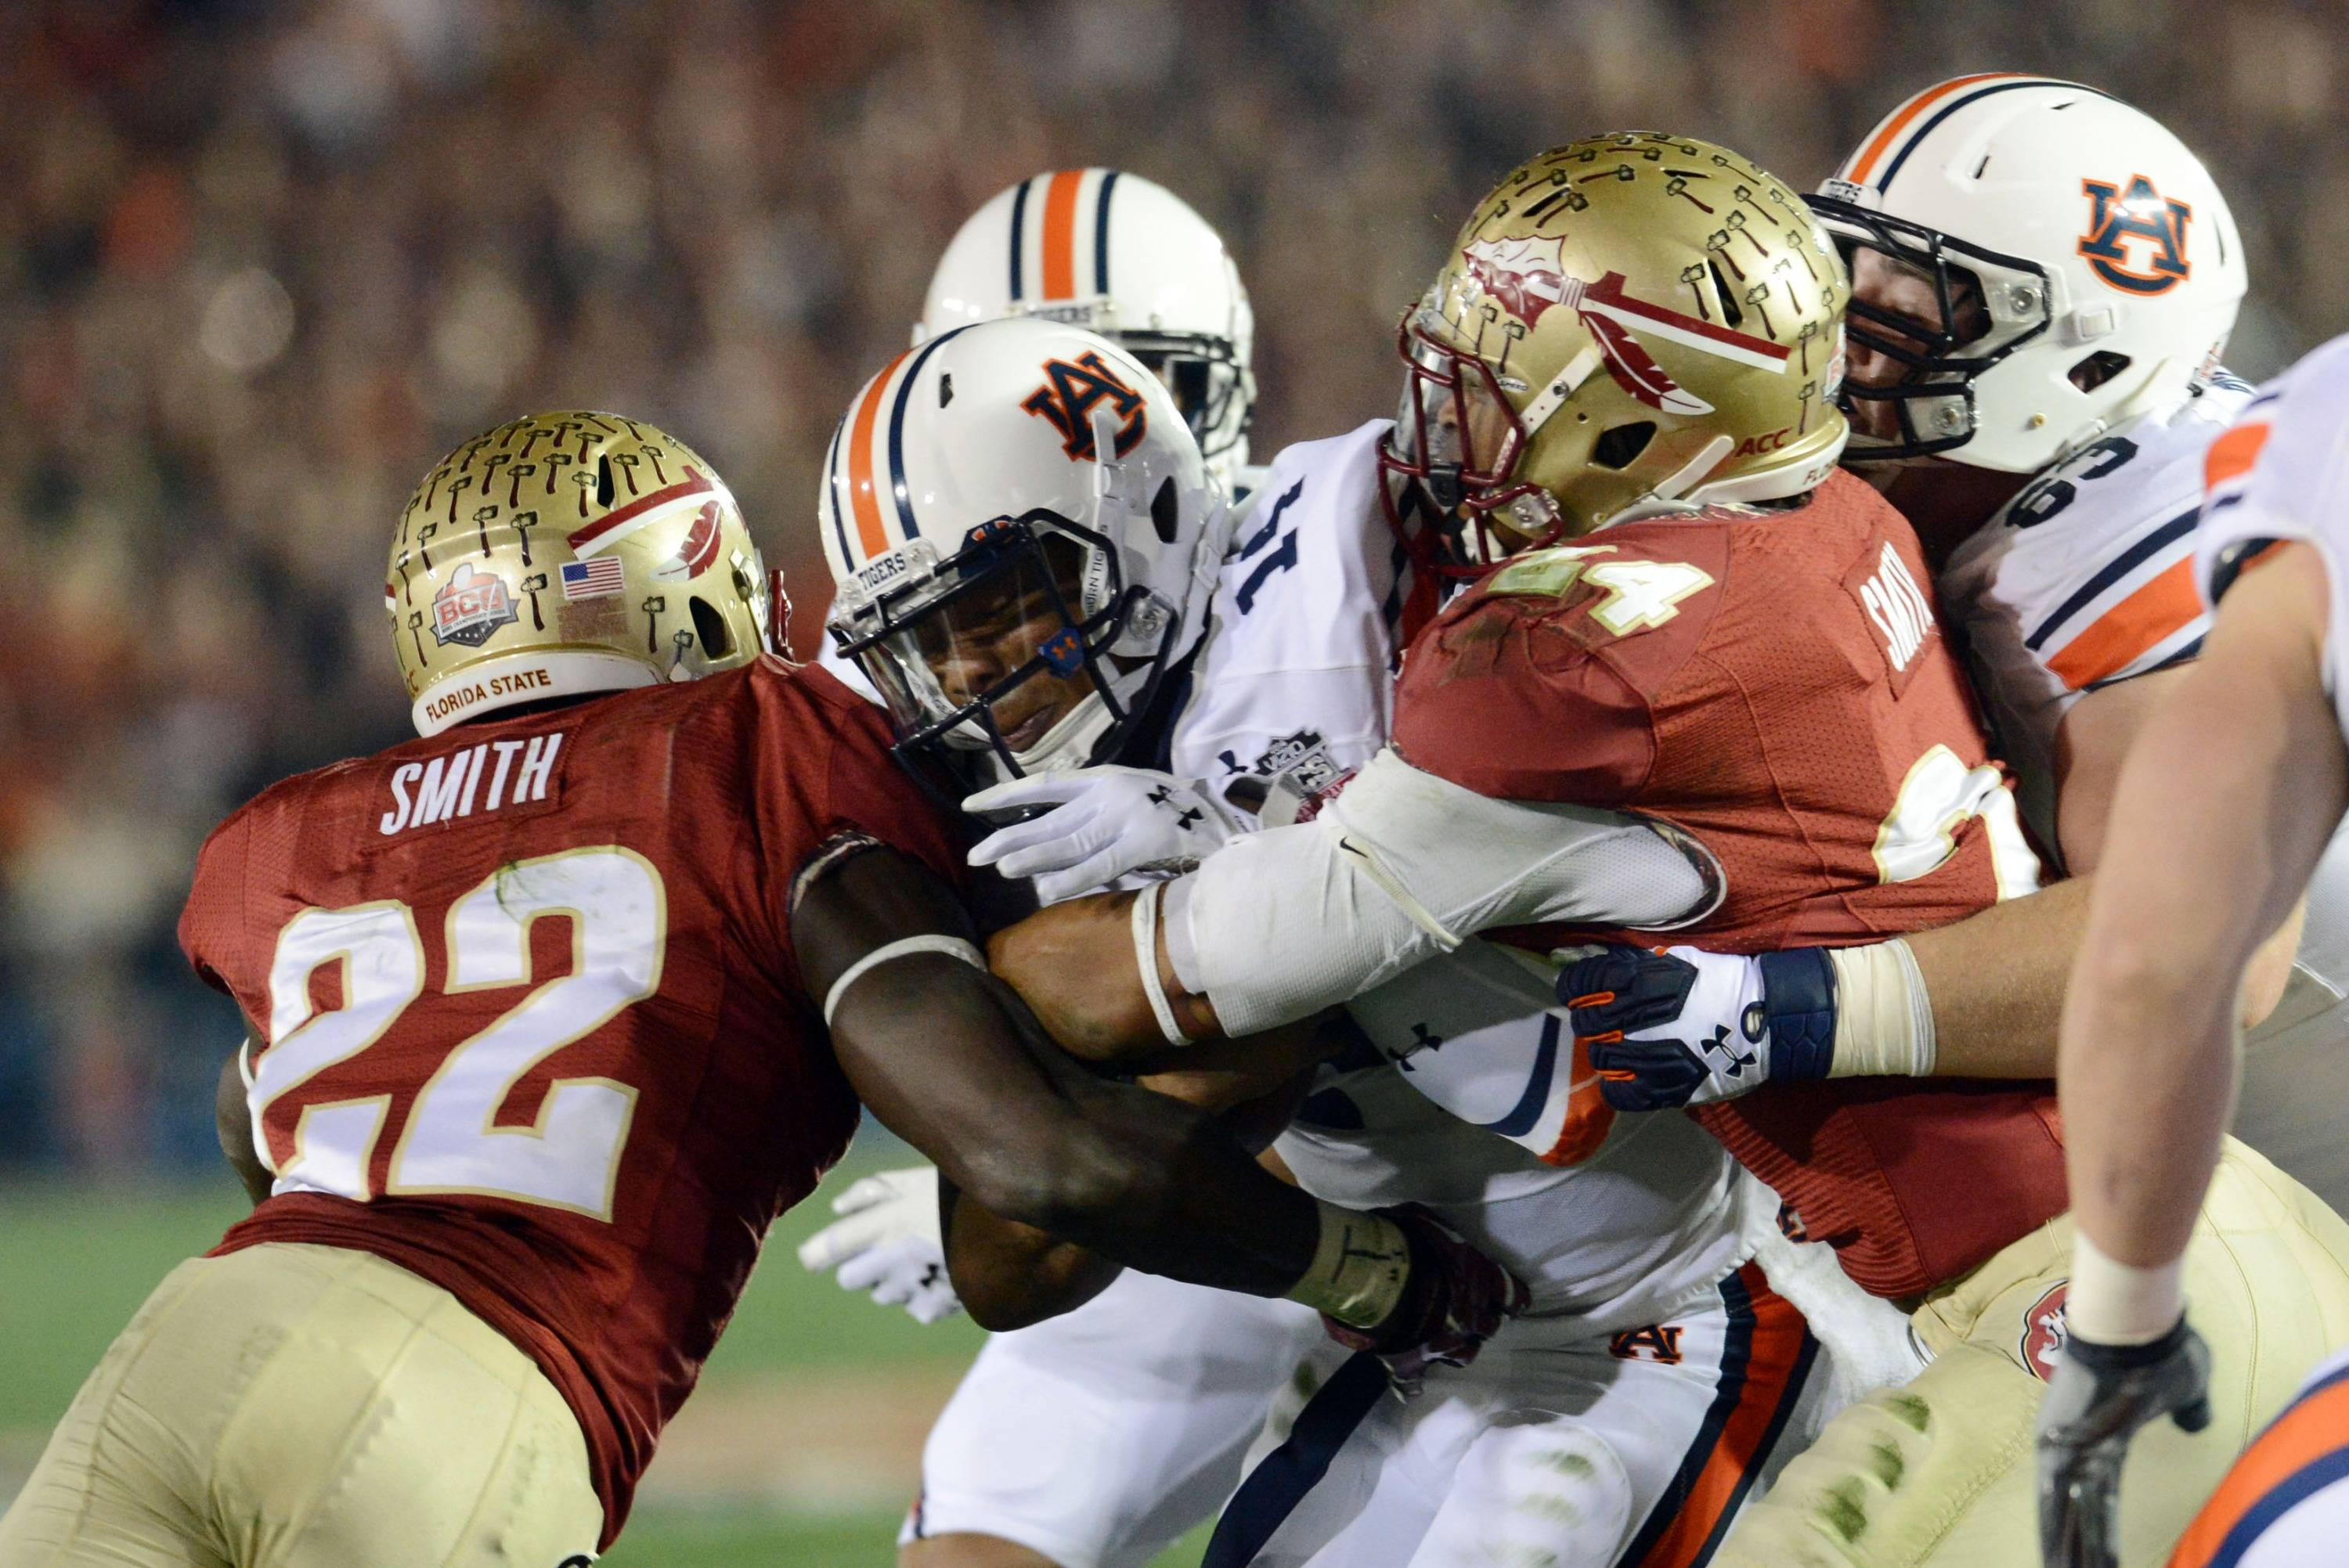 Jan 6, 2014; Pasadena, CA, USA; Auburn Tigers quarterback Nick Marshall (14) is tackled by Florida State Seminoles linebacker Telvin Smith (22) and linebacker Terrance Smith (24) during the first half of the 2014 BCS National Championship game at the Rose Bowl.  Mandatory Credit: Jayne Kamin-Oncea-USA TODAY Sports